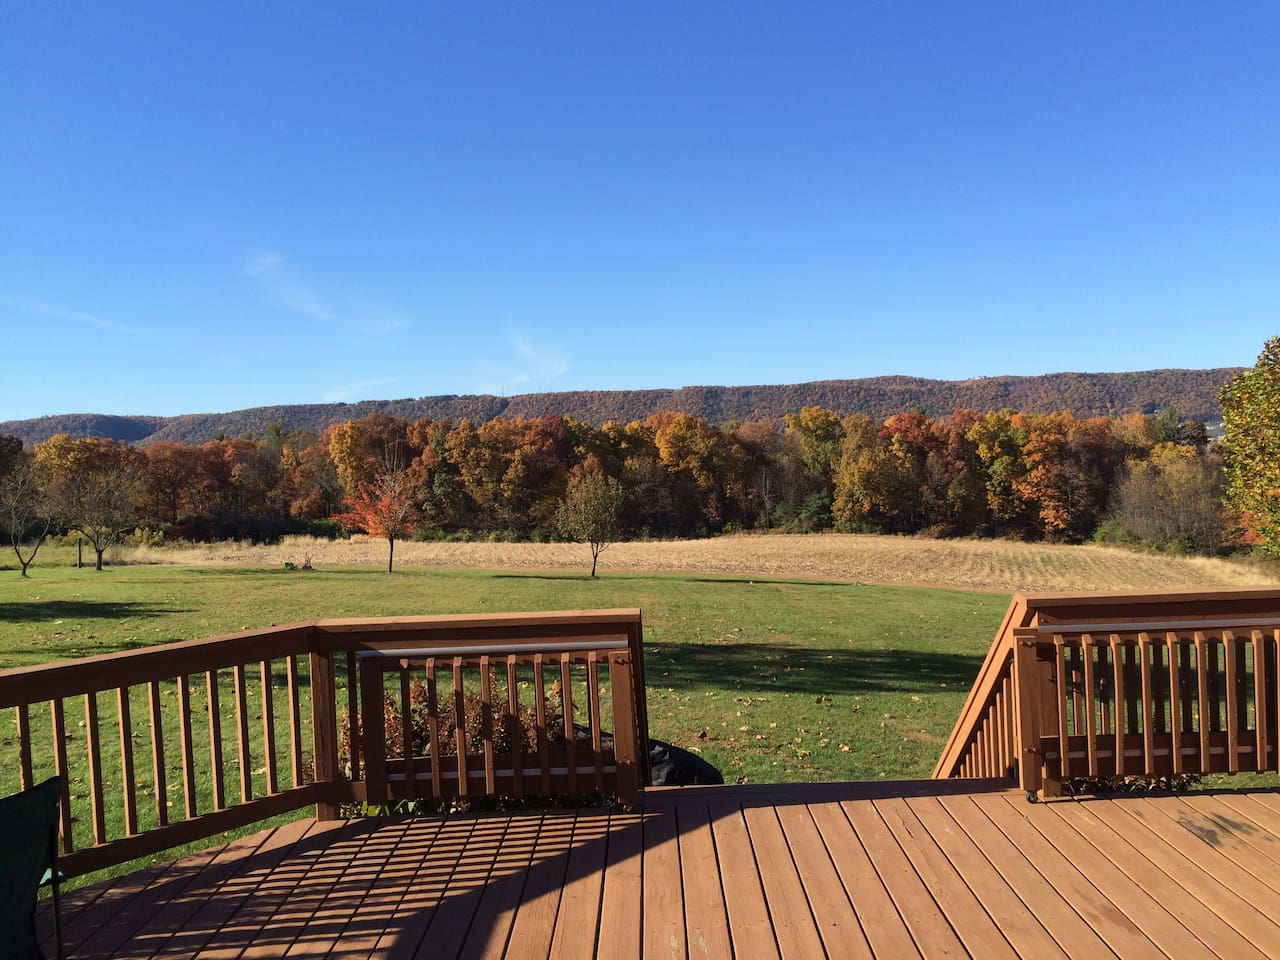 Deck view of Purdue Mountain